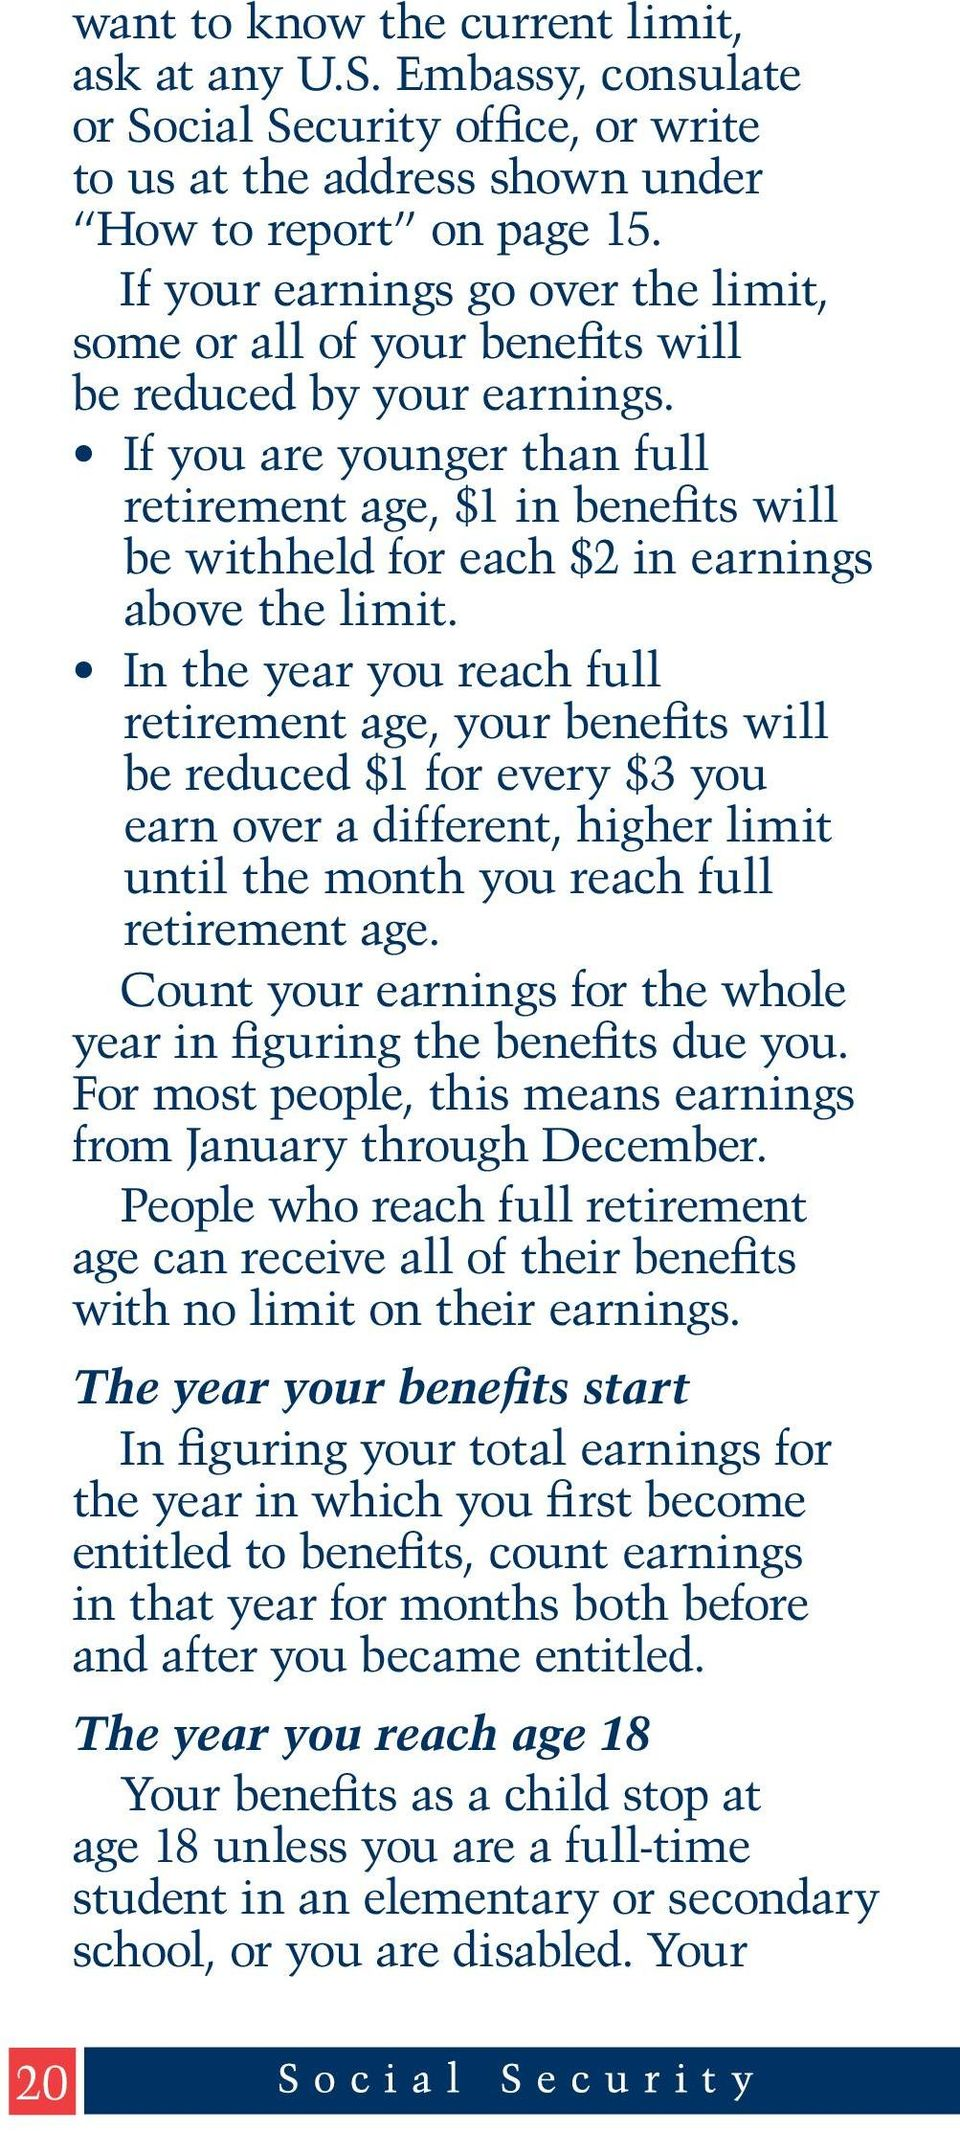 If you are younger than full retirement age, $1 in benefits will be withheld for each $2 in earnings above the limit.